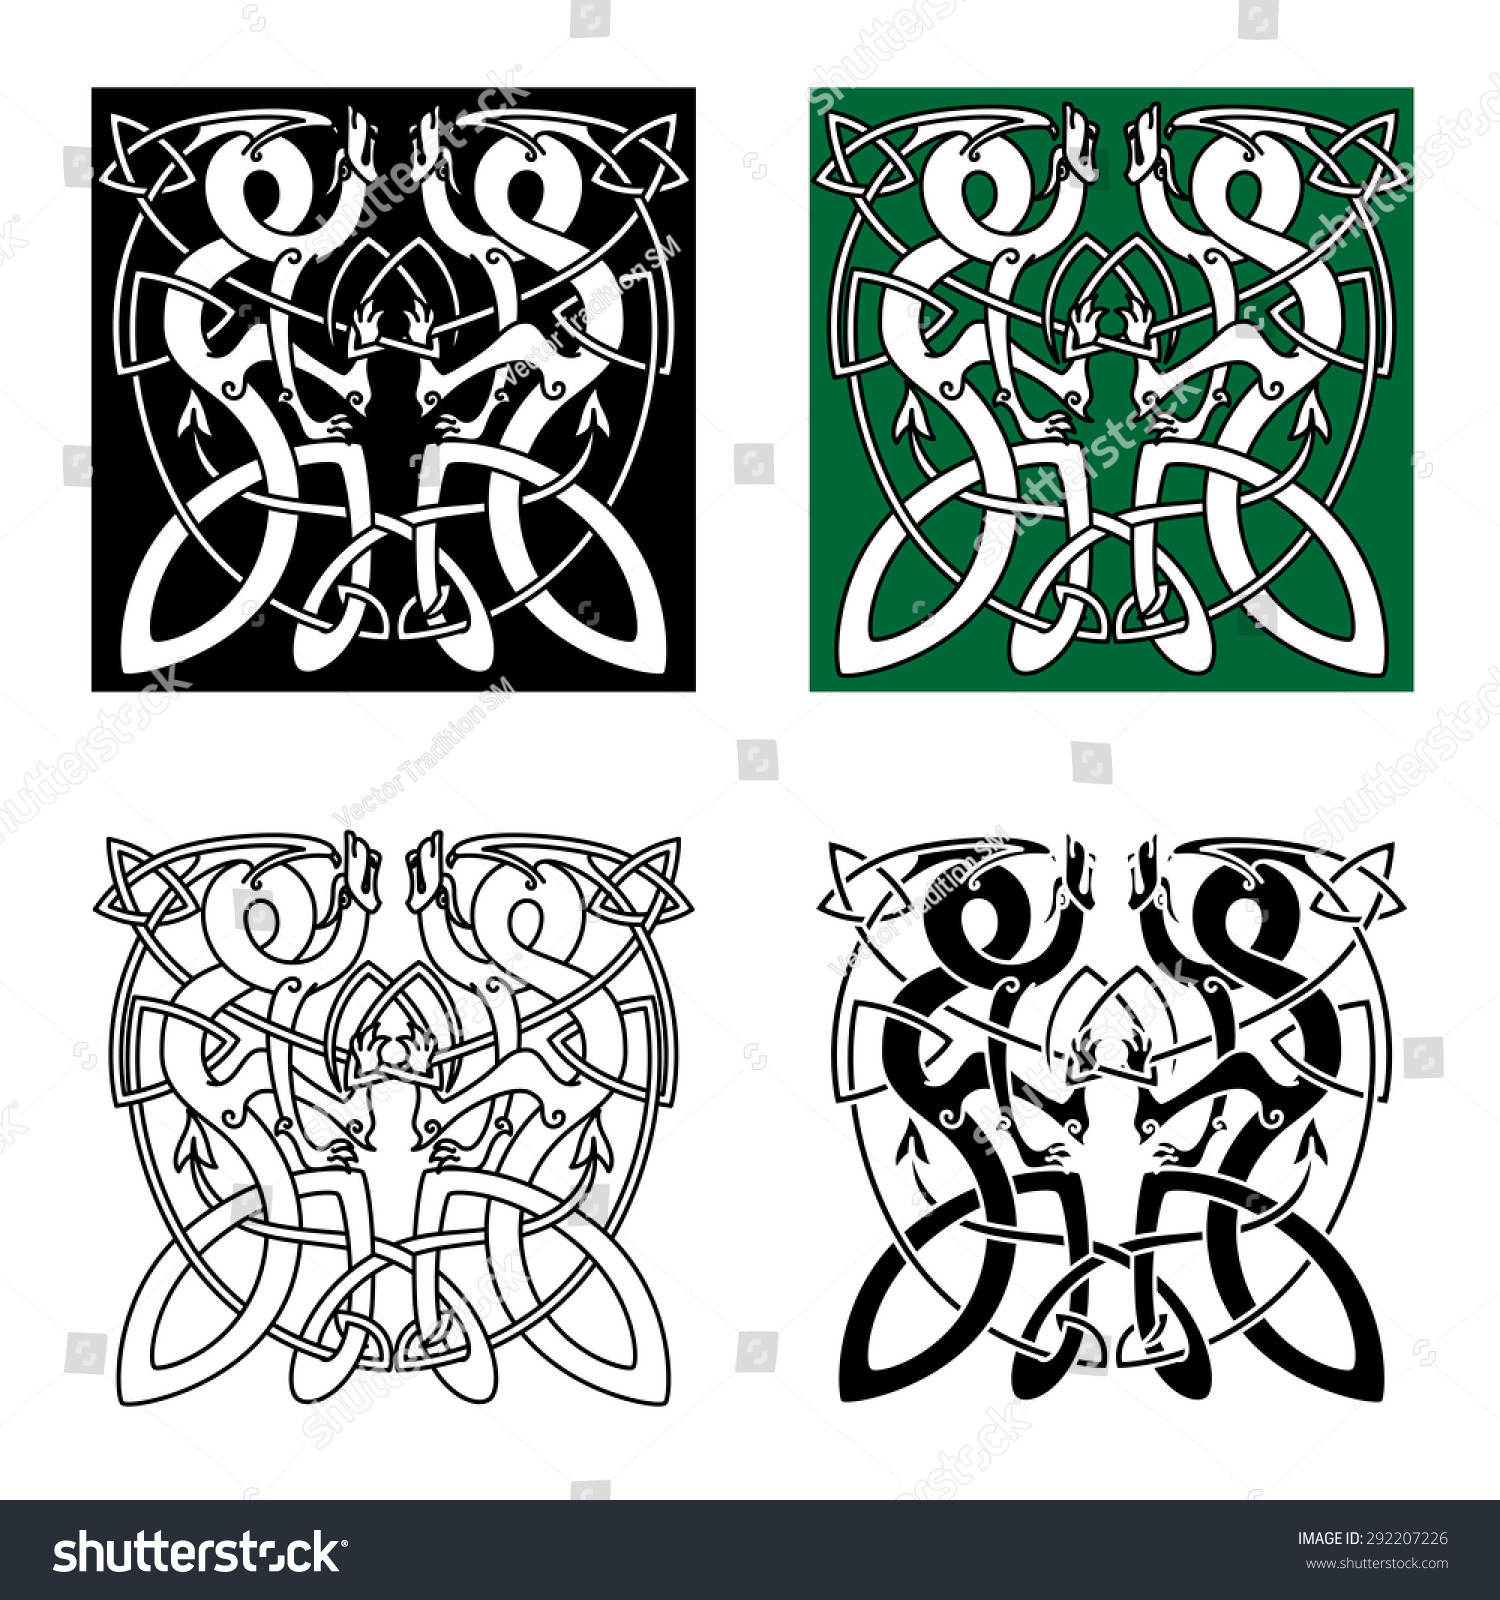 Animal ornaments - Ancient Celtic Animal Ornaments With Twisted Dragons In Tribal Style For Tattoo Or Totem Animal Design